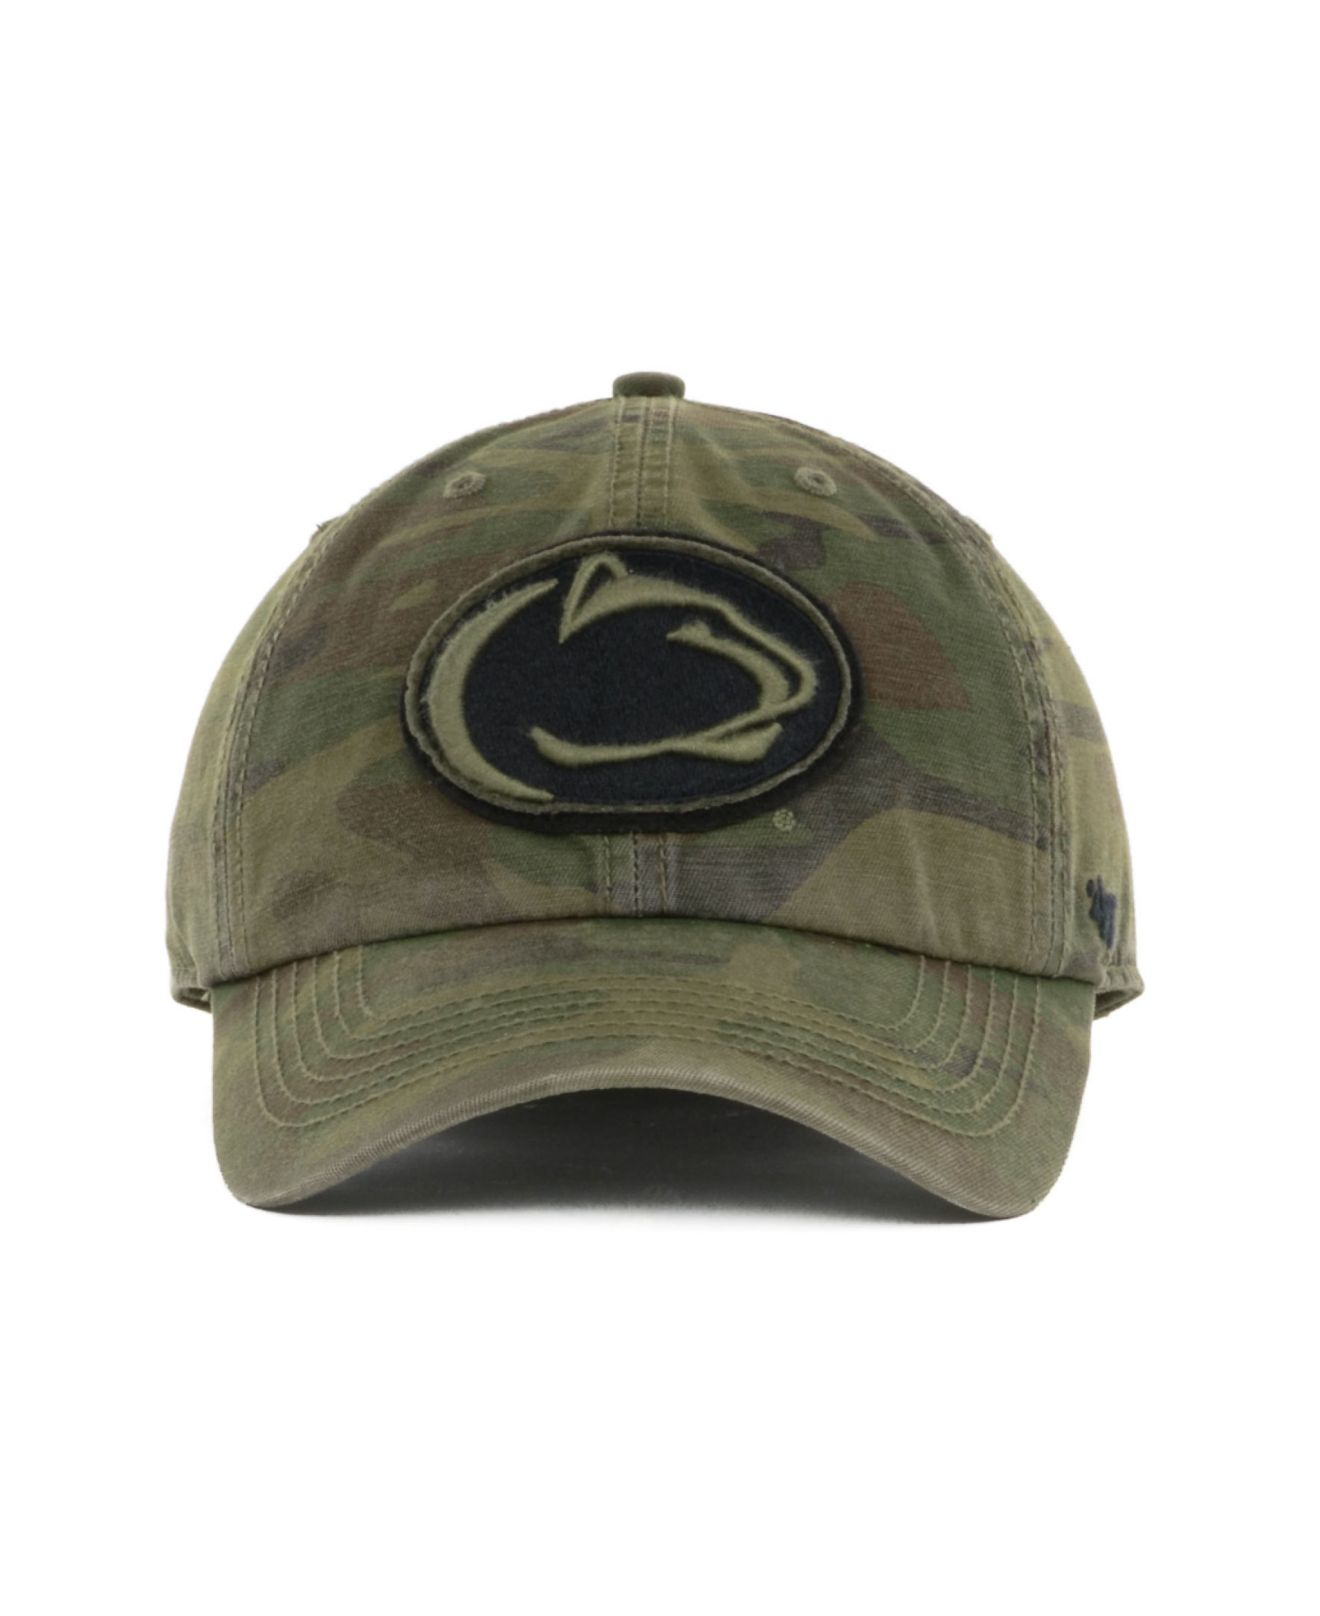 910a5192 47 Brand Penn State Nittany Lions Movement Franchise Cap in Green ...